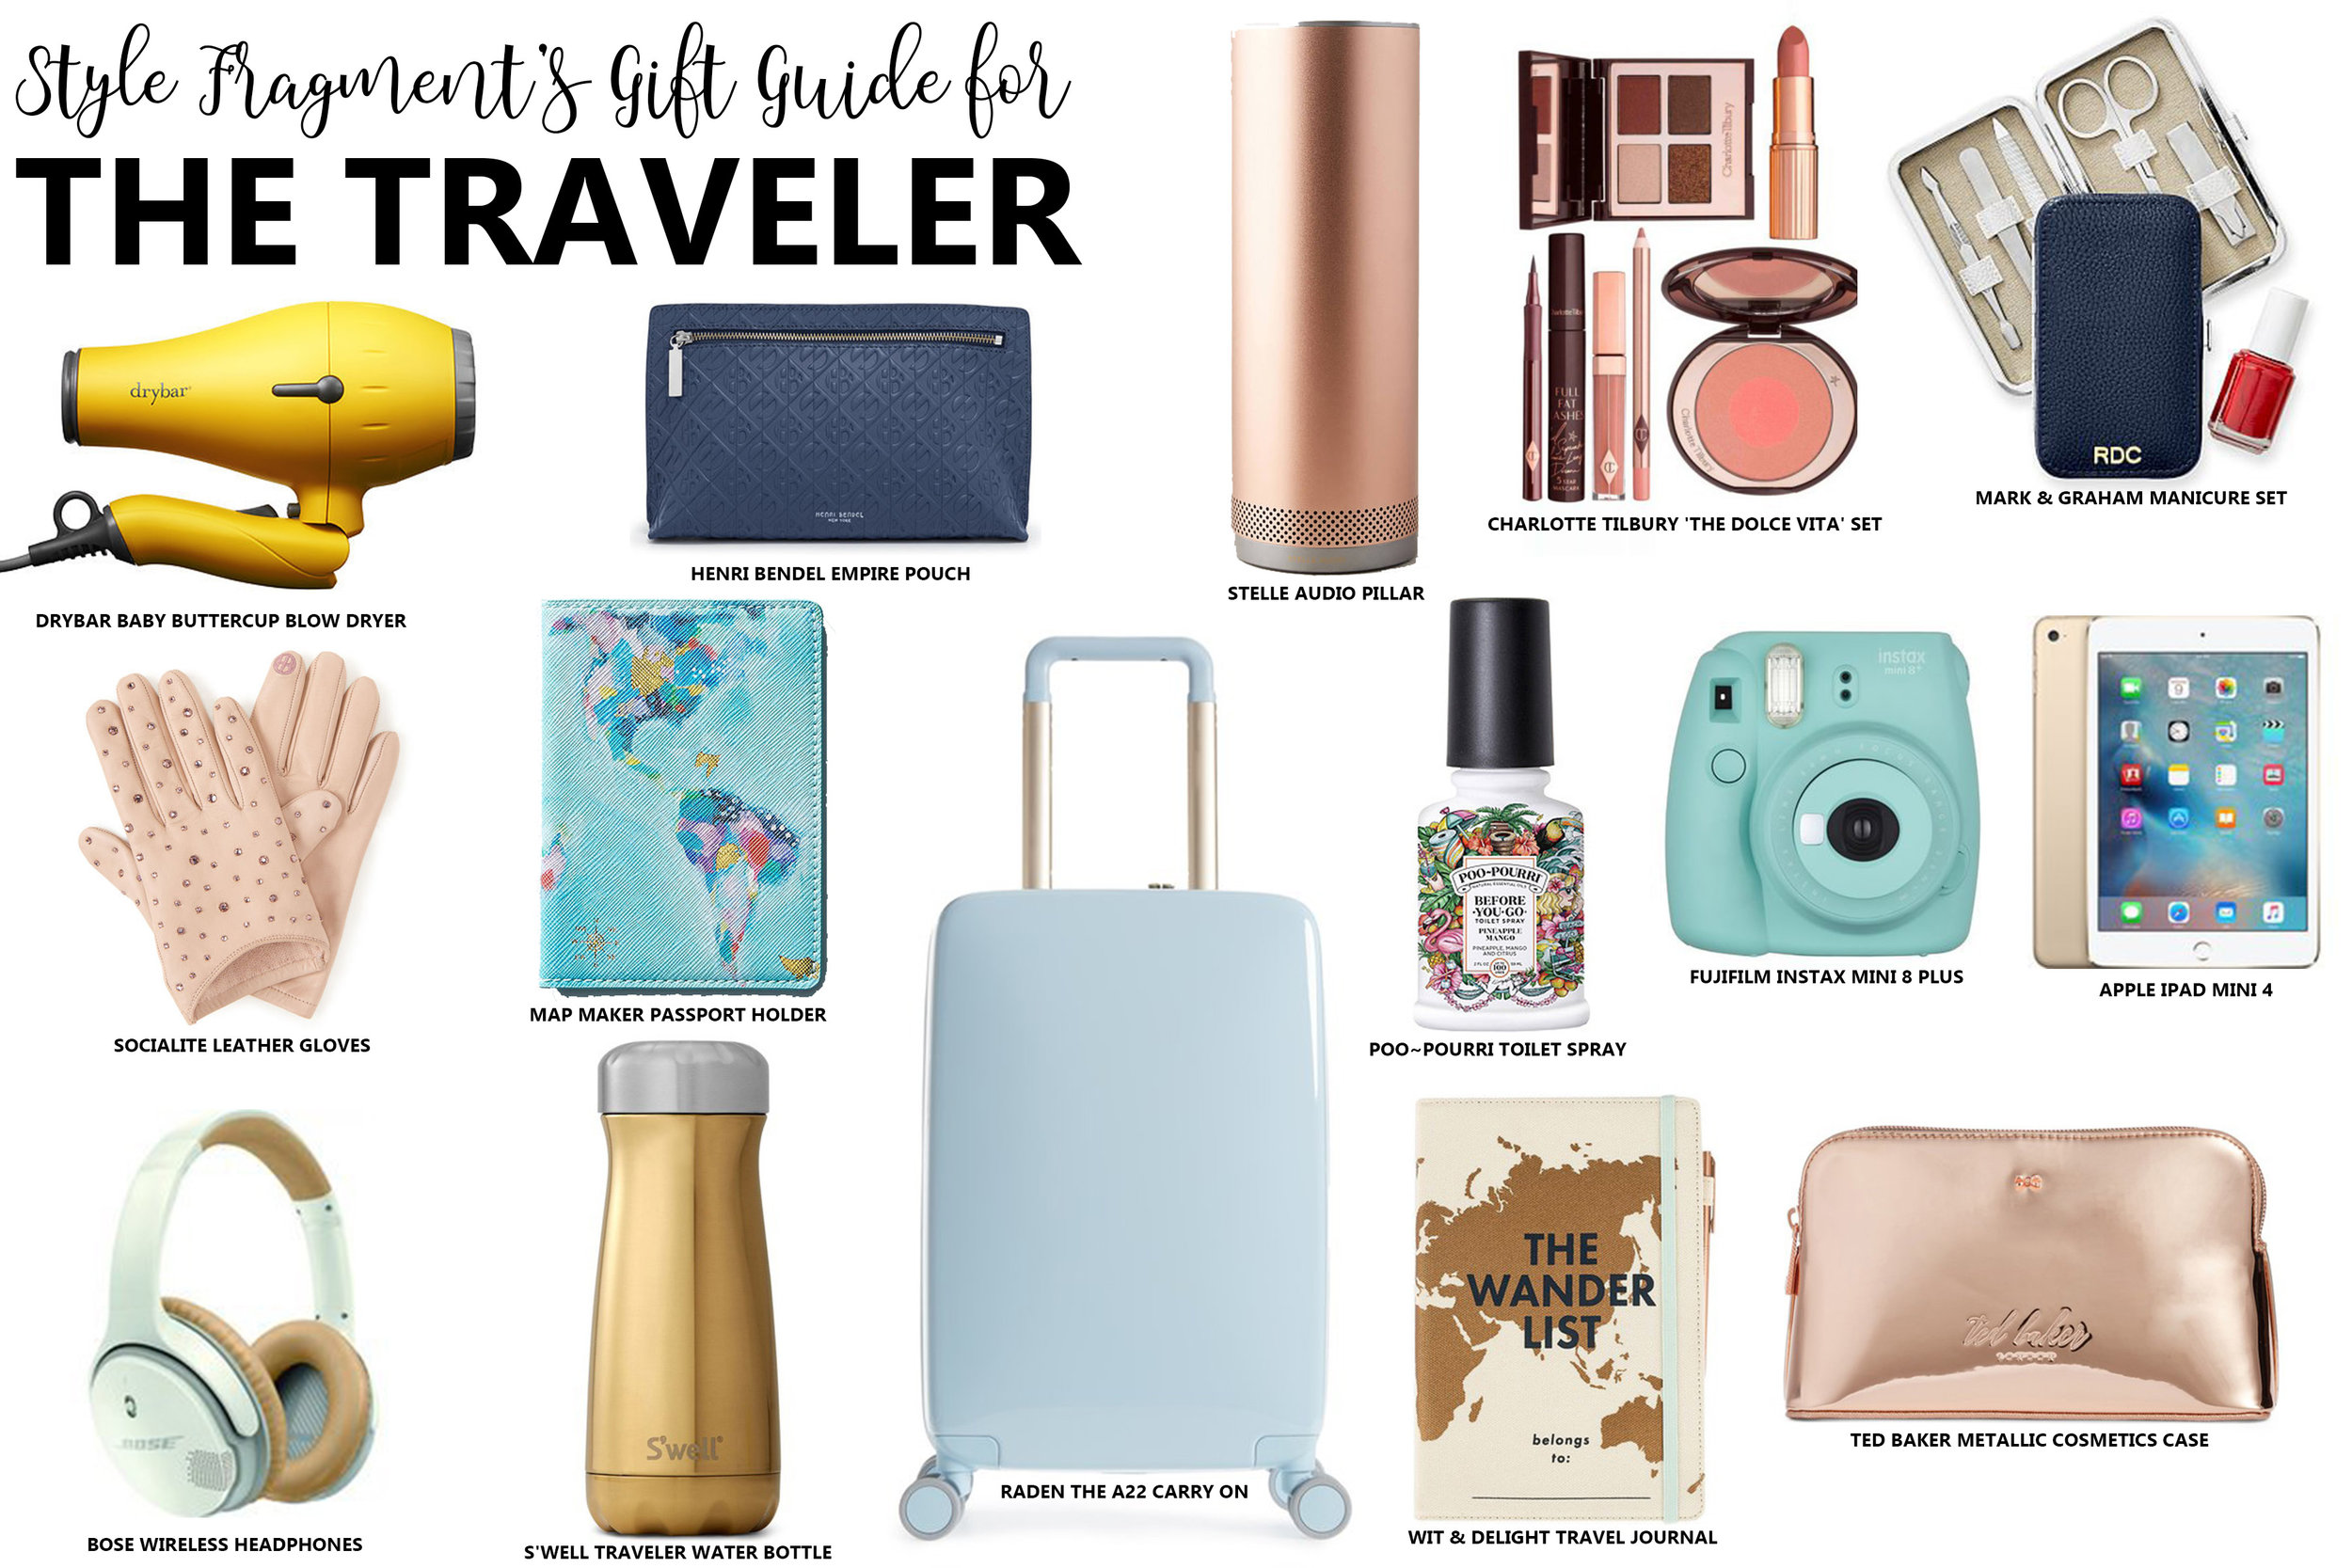 Gift Guide - Traveler - Style Fragment.jpg